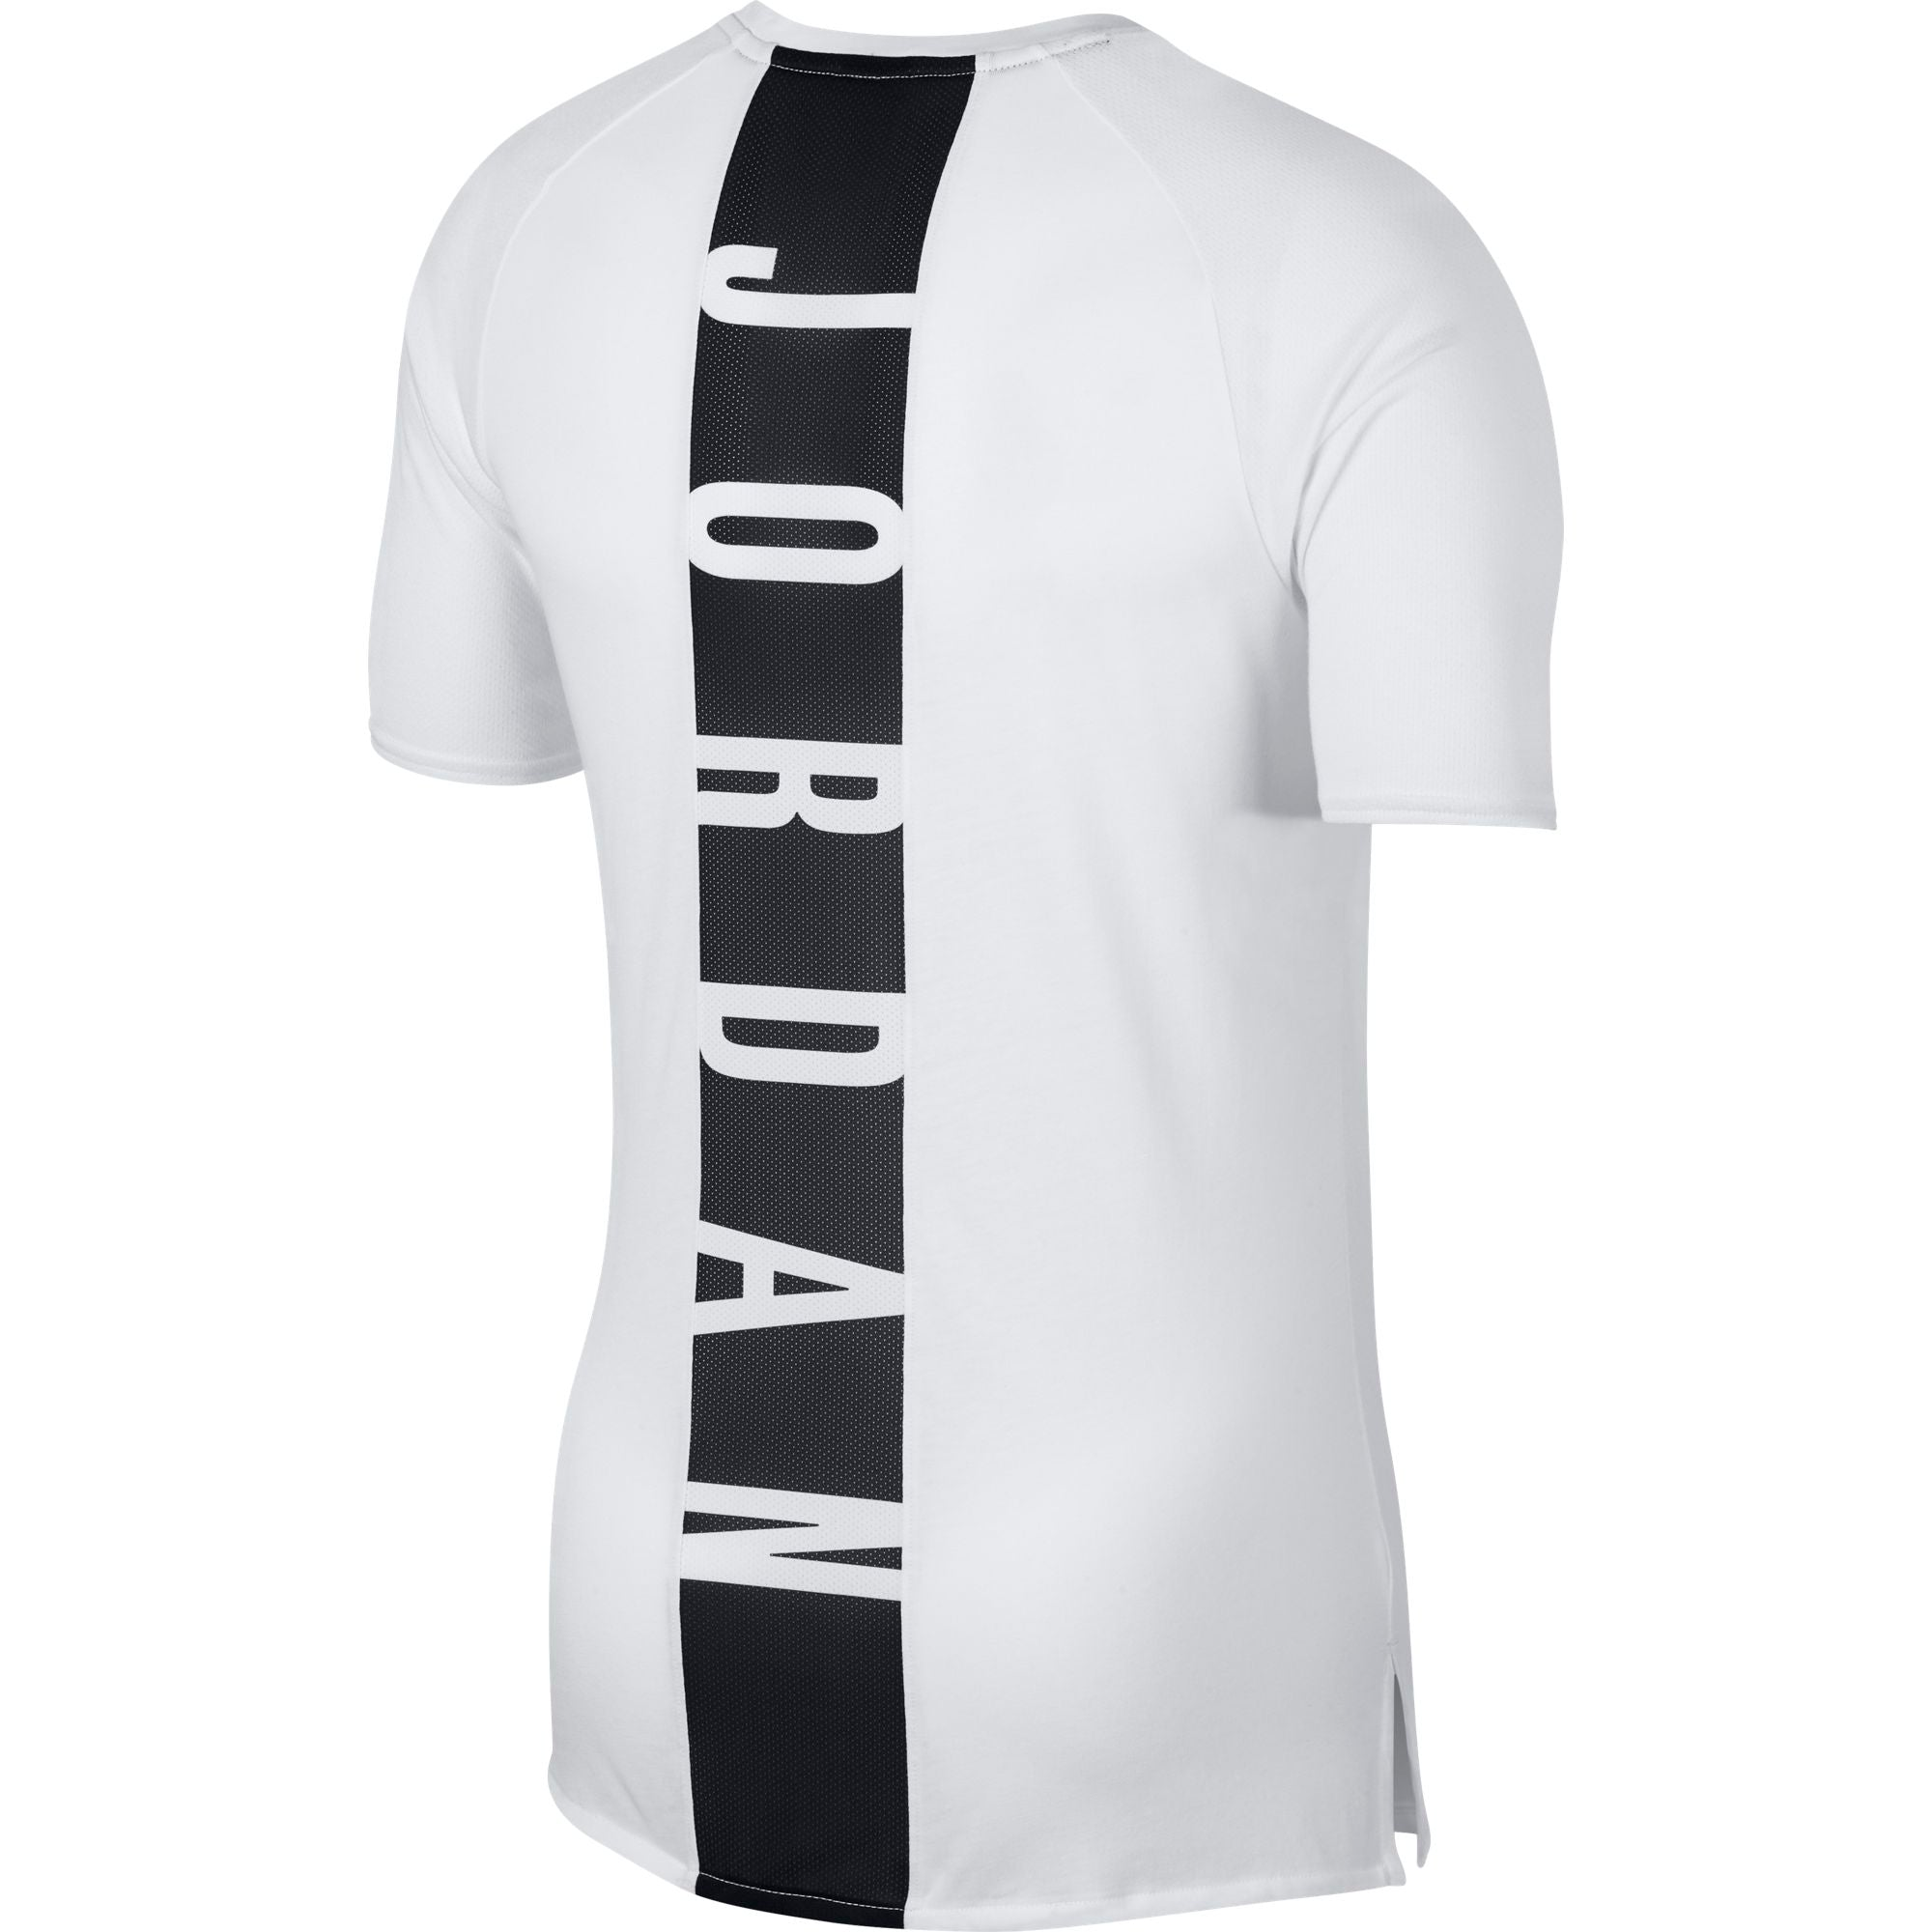 Nike Jordan Dry 23 Alpha Short-Sleeve Training Top - White/Black